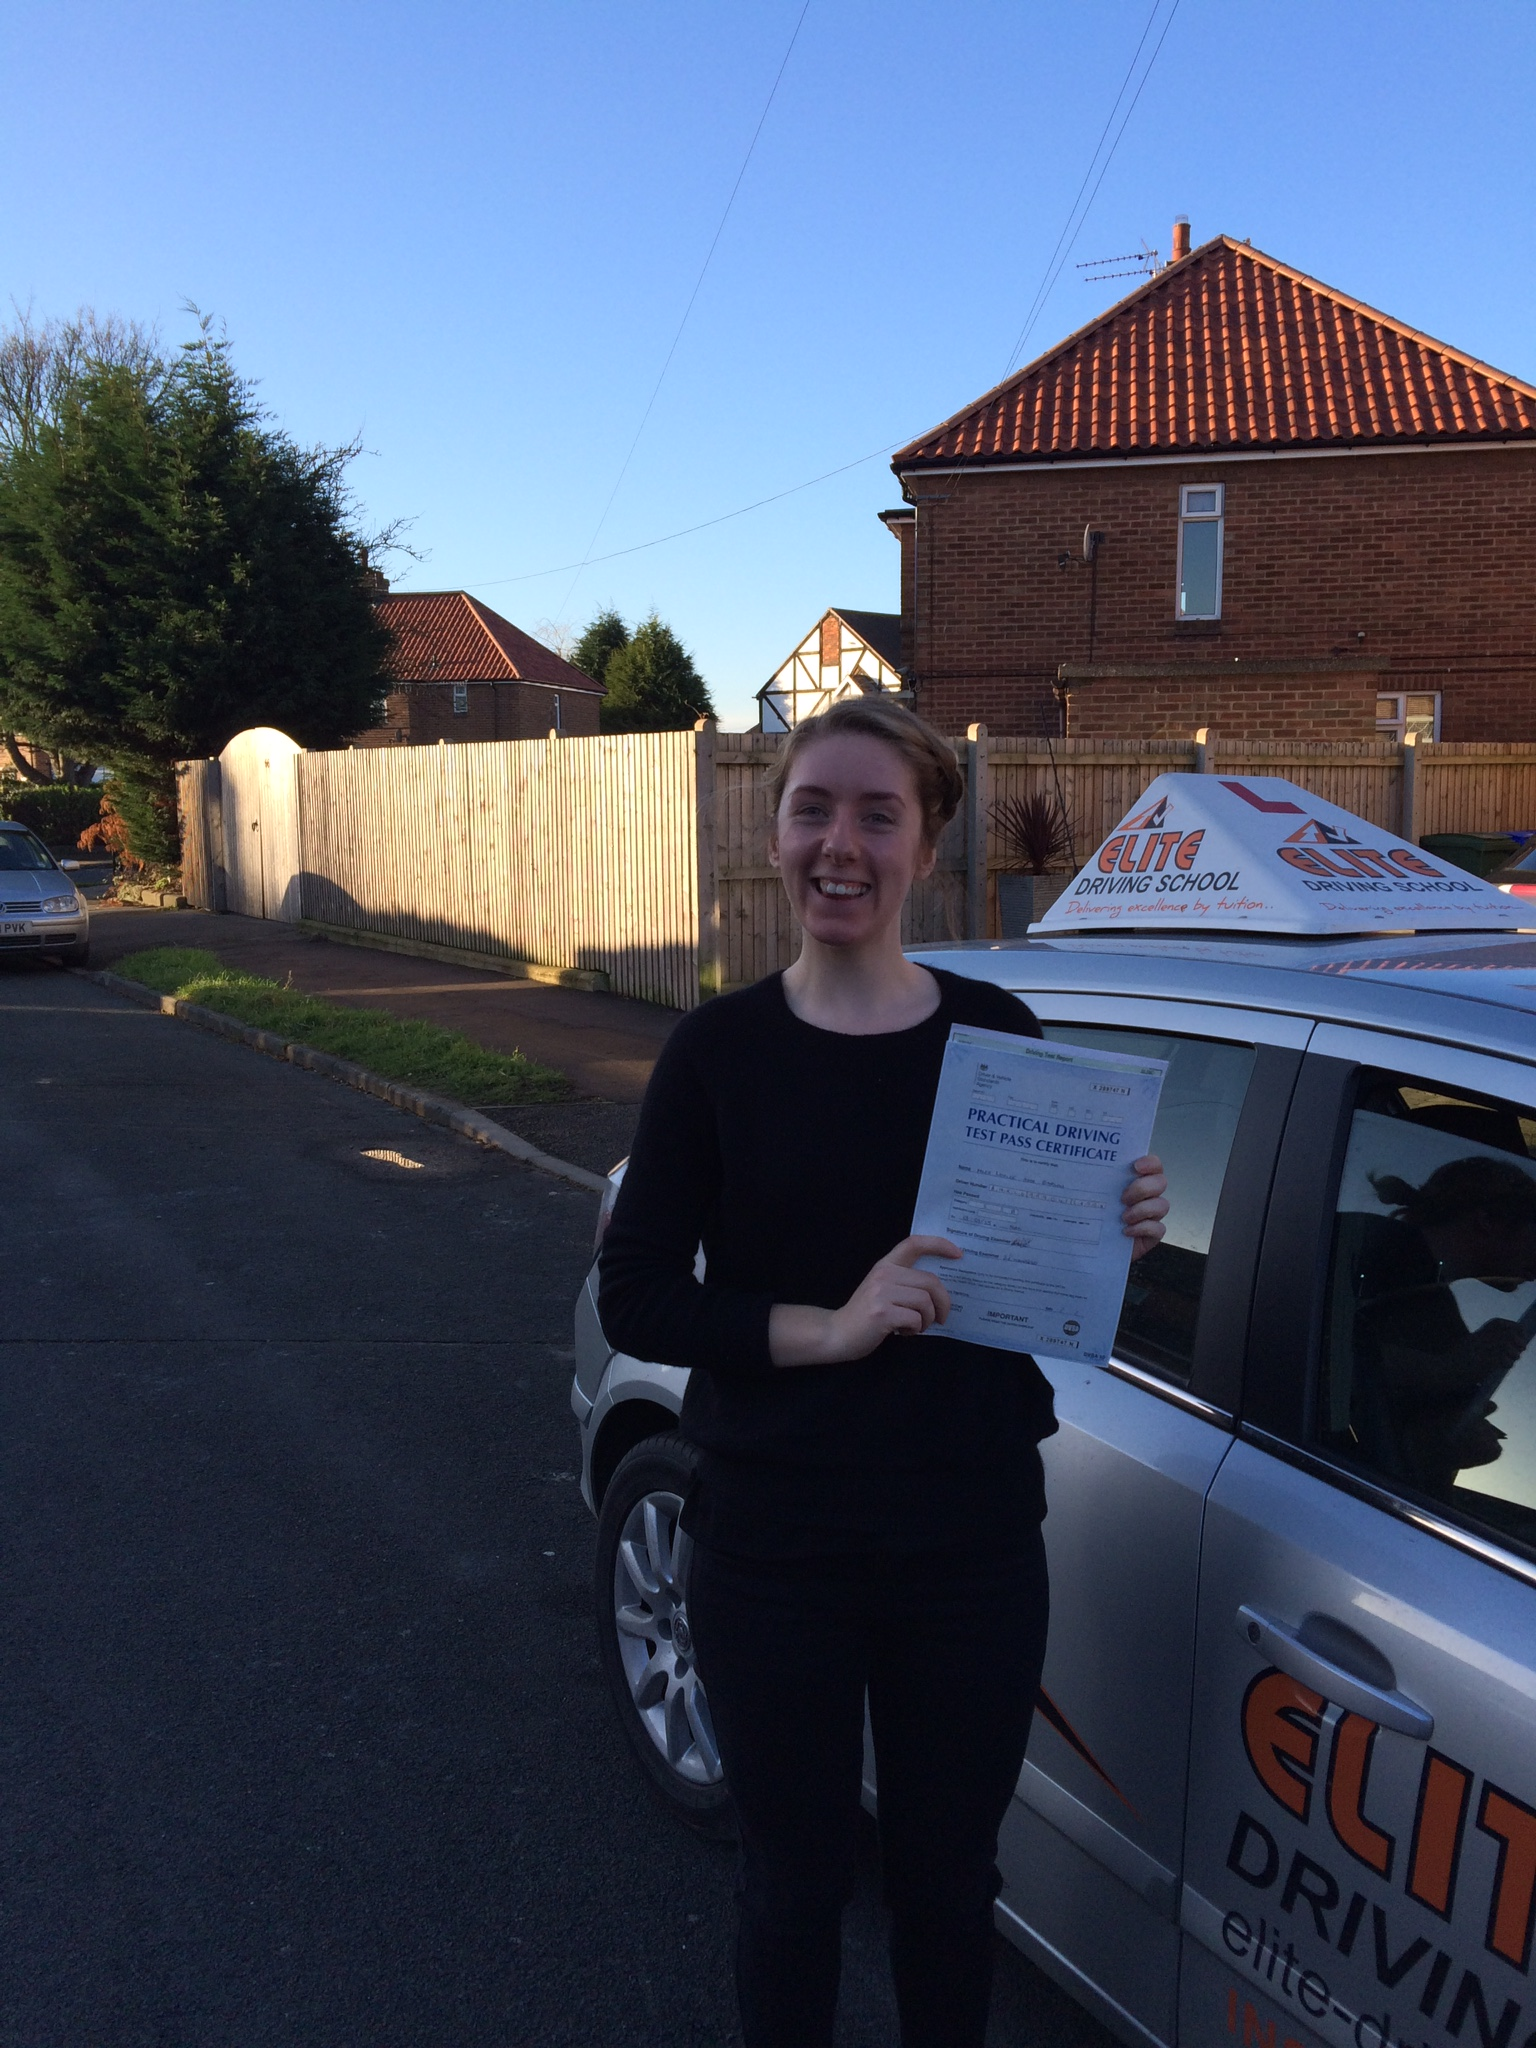 This is Louise Barlow who took her driving lessons in York